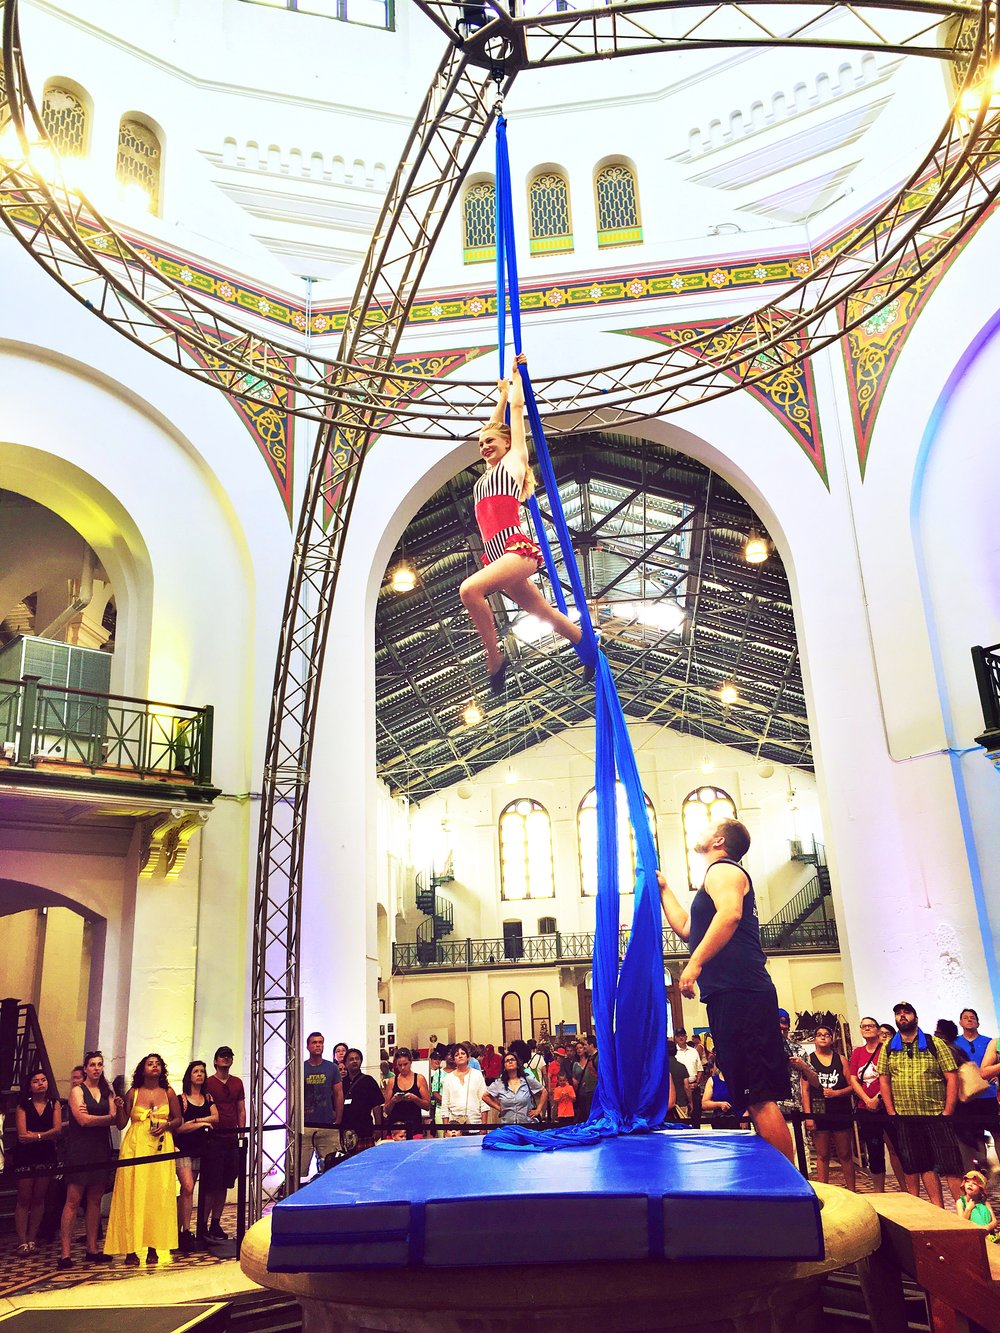 An artist on aerial silks performs at the Circus Arts Smithsonian Folklife Festival while a crowd watches intently.